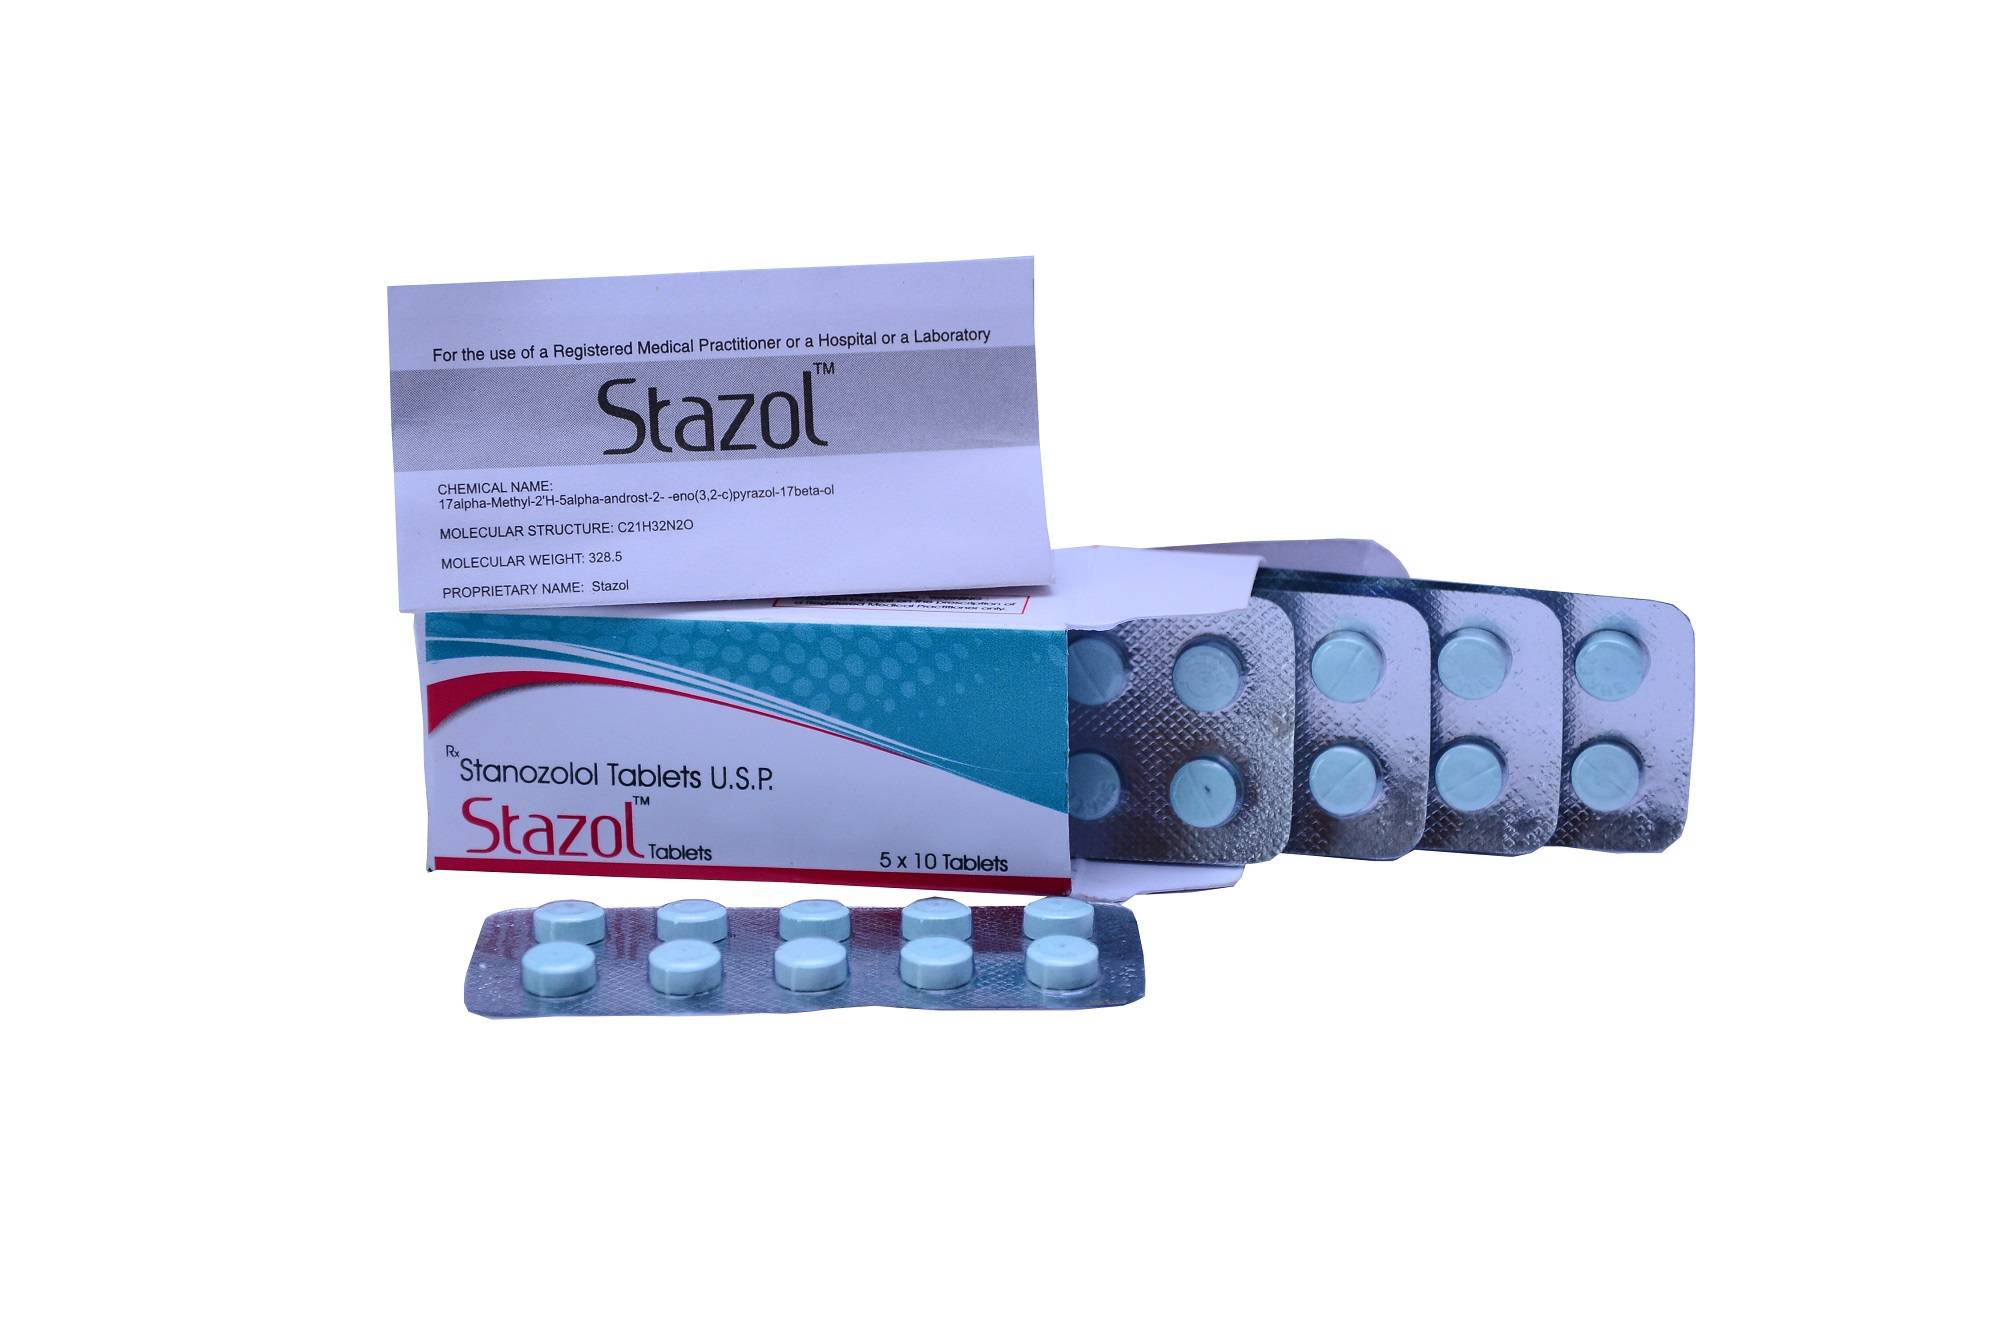 Stazol 10mg - Stanozolol Tablets